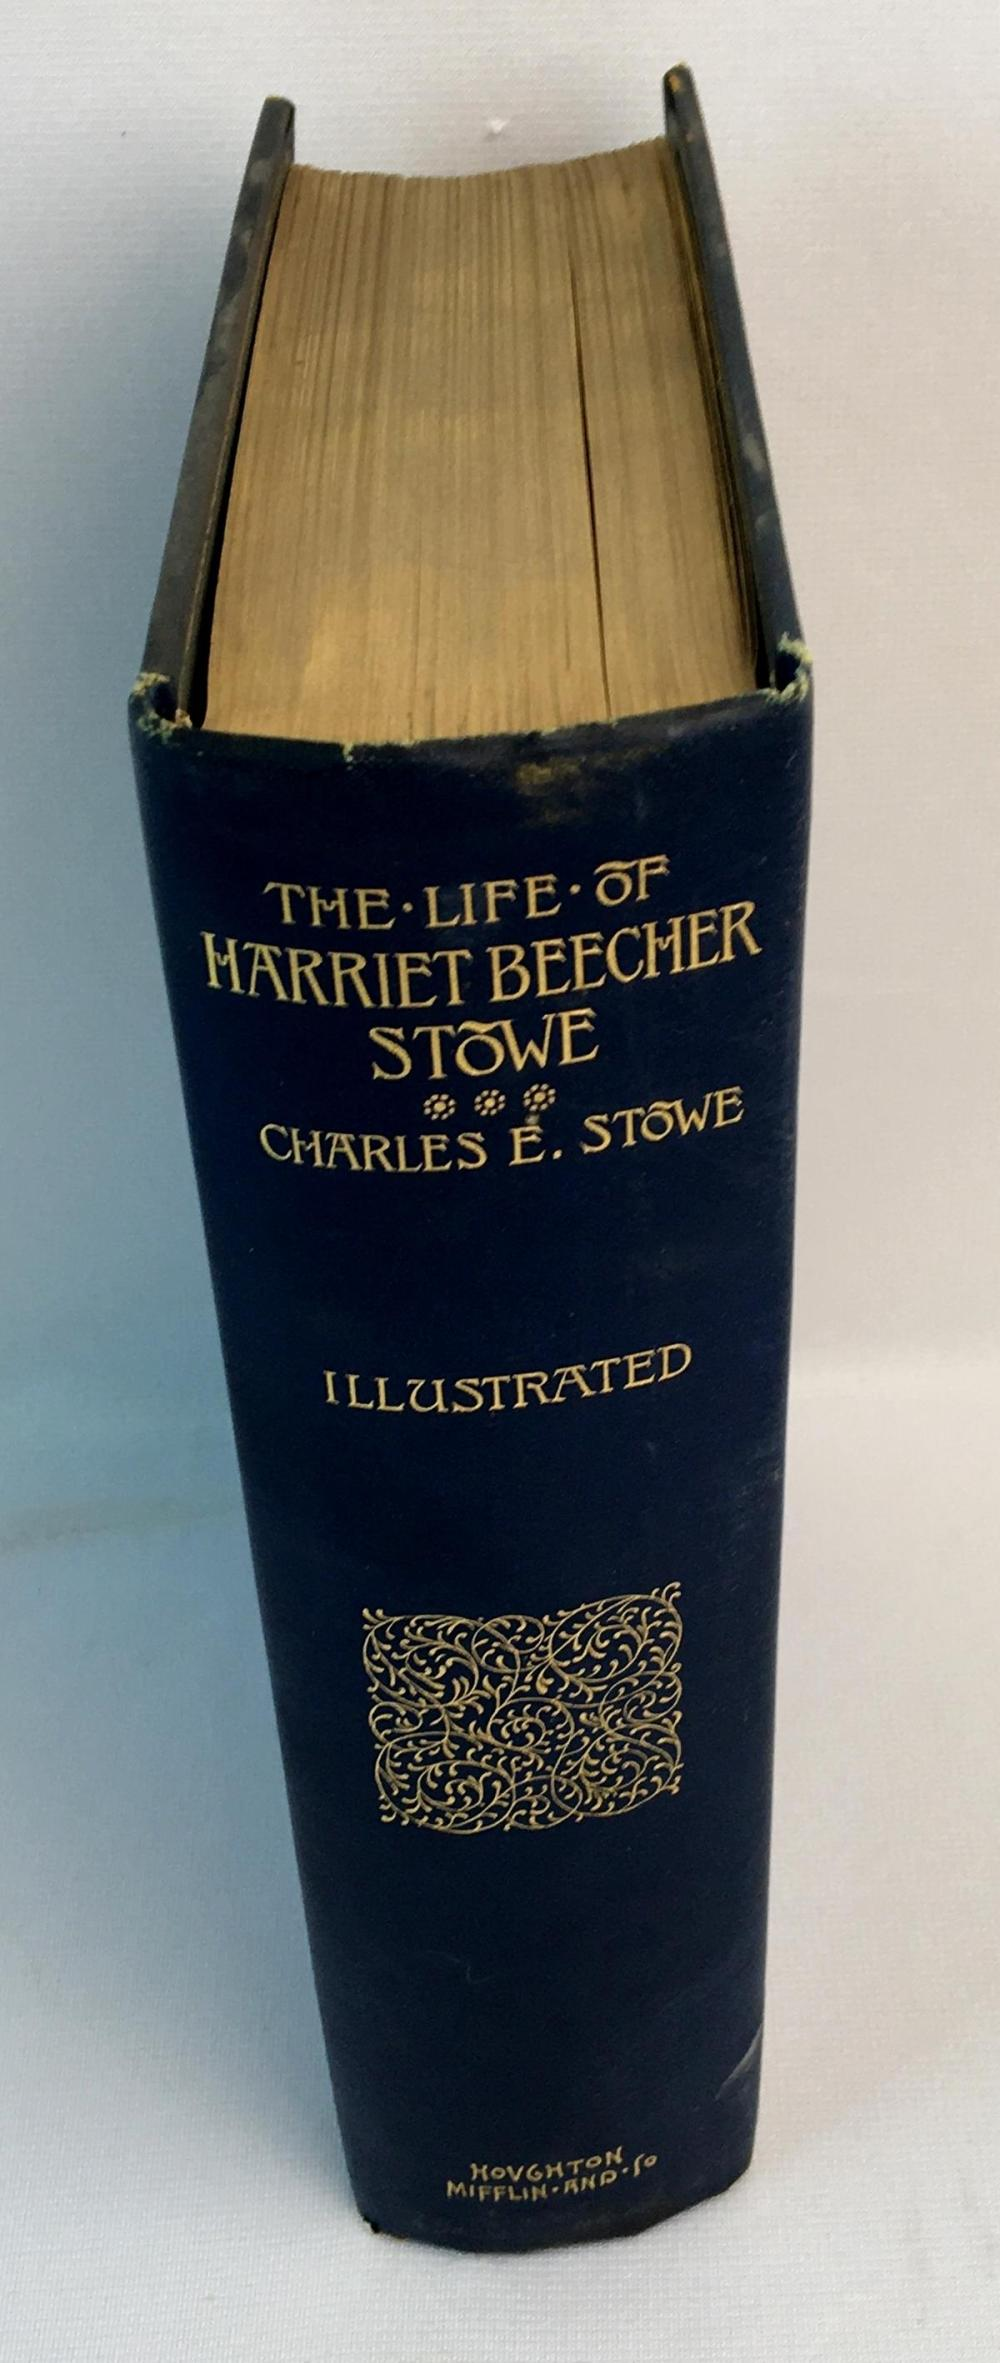 1890 The Life of Harriet Beecher Stowe Compiled From Her Letters and Journals by Charles Edward Stowe ILLUSTRATED